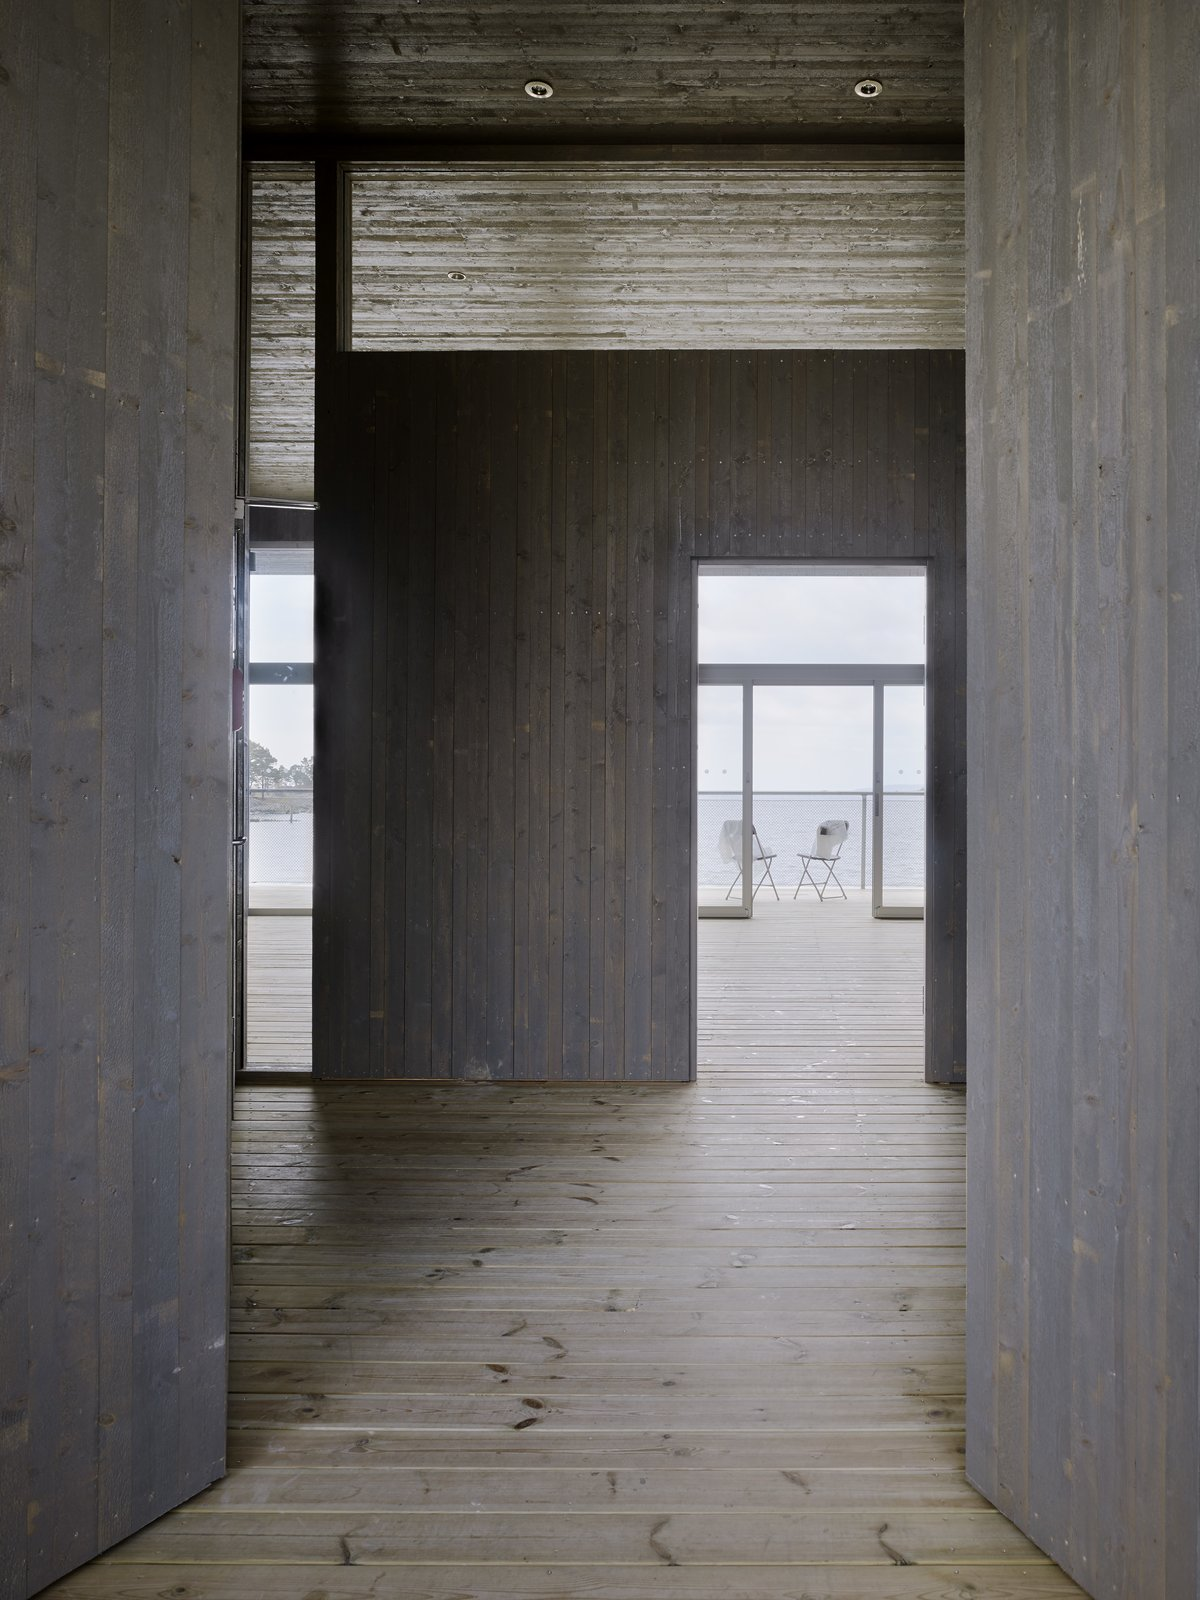 Hallway and Light Hardwood Floor  Photo 5 of 6 in A Swedish Coastal Town Commissions an Otherworldly Bathhouse